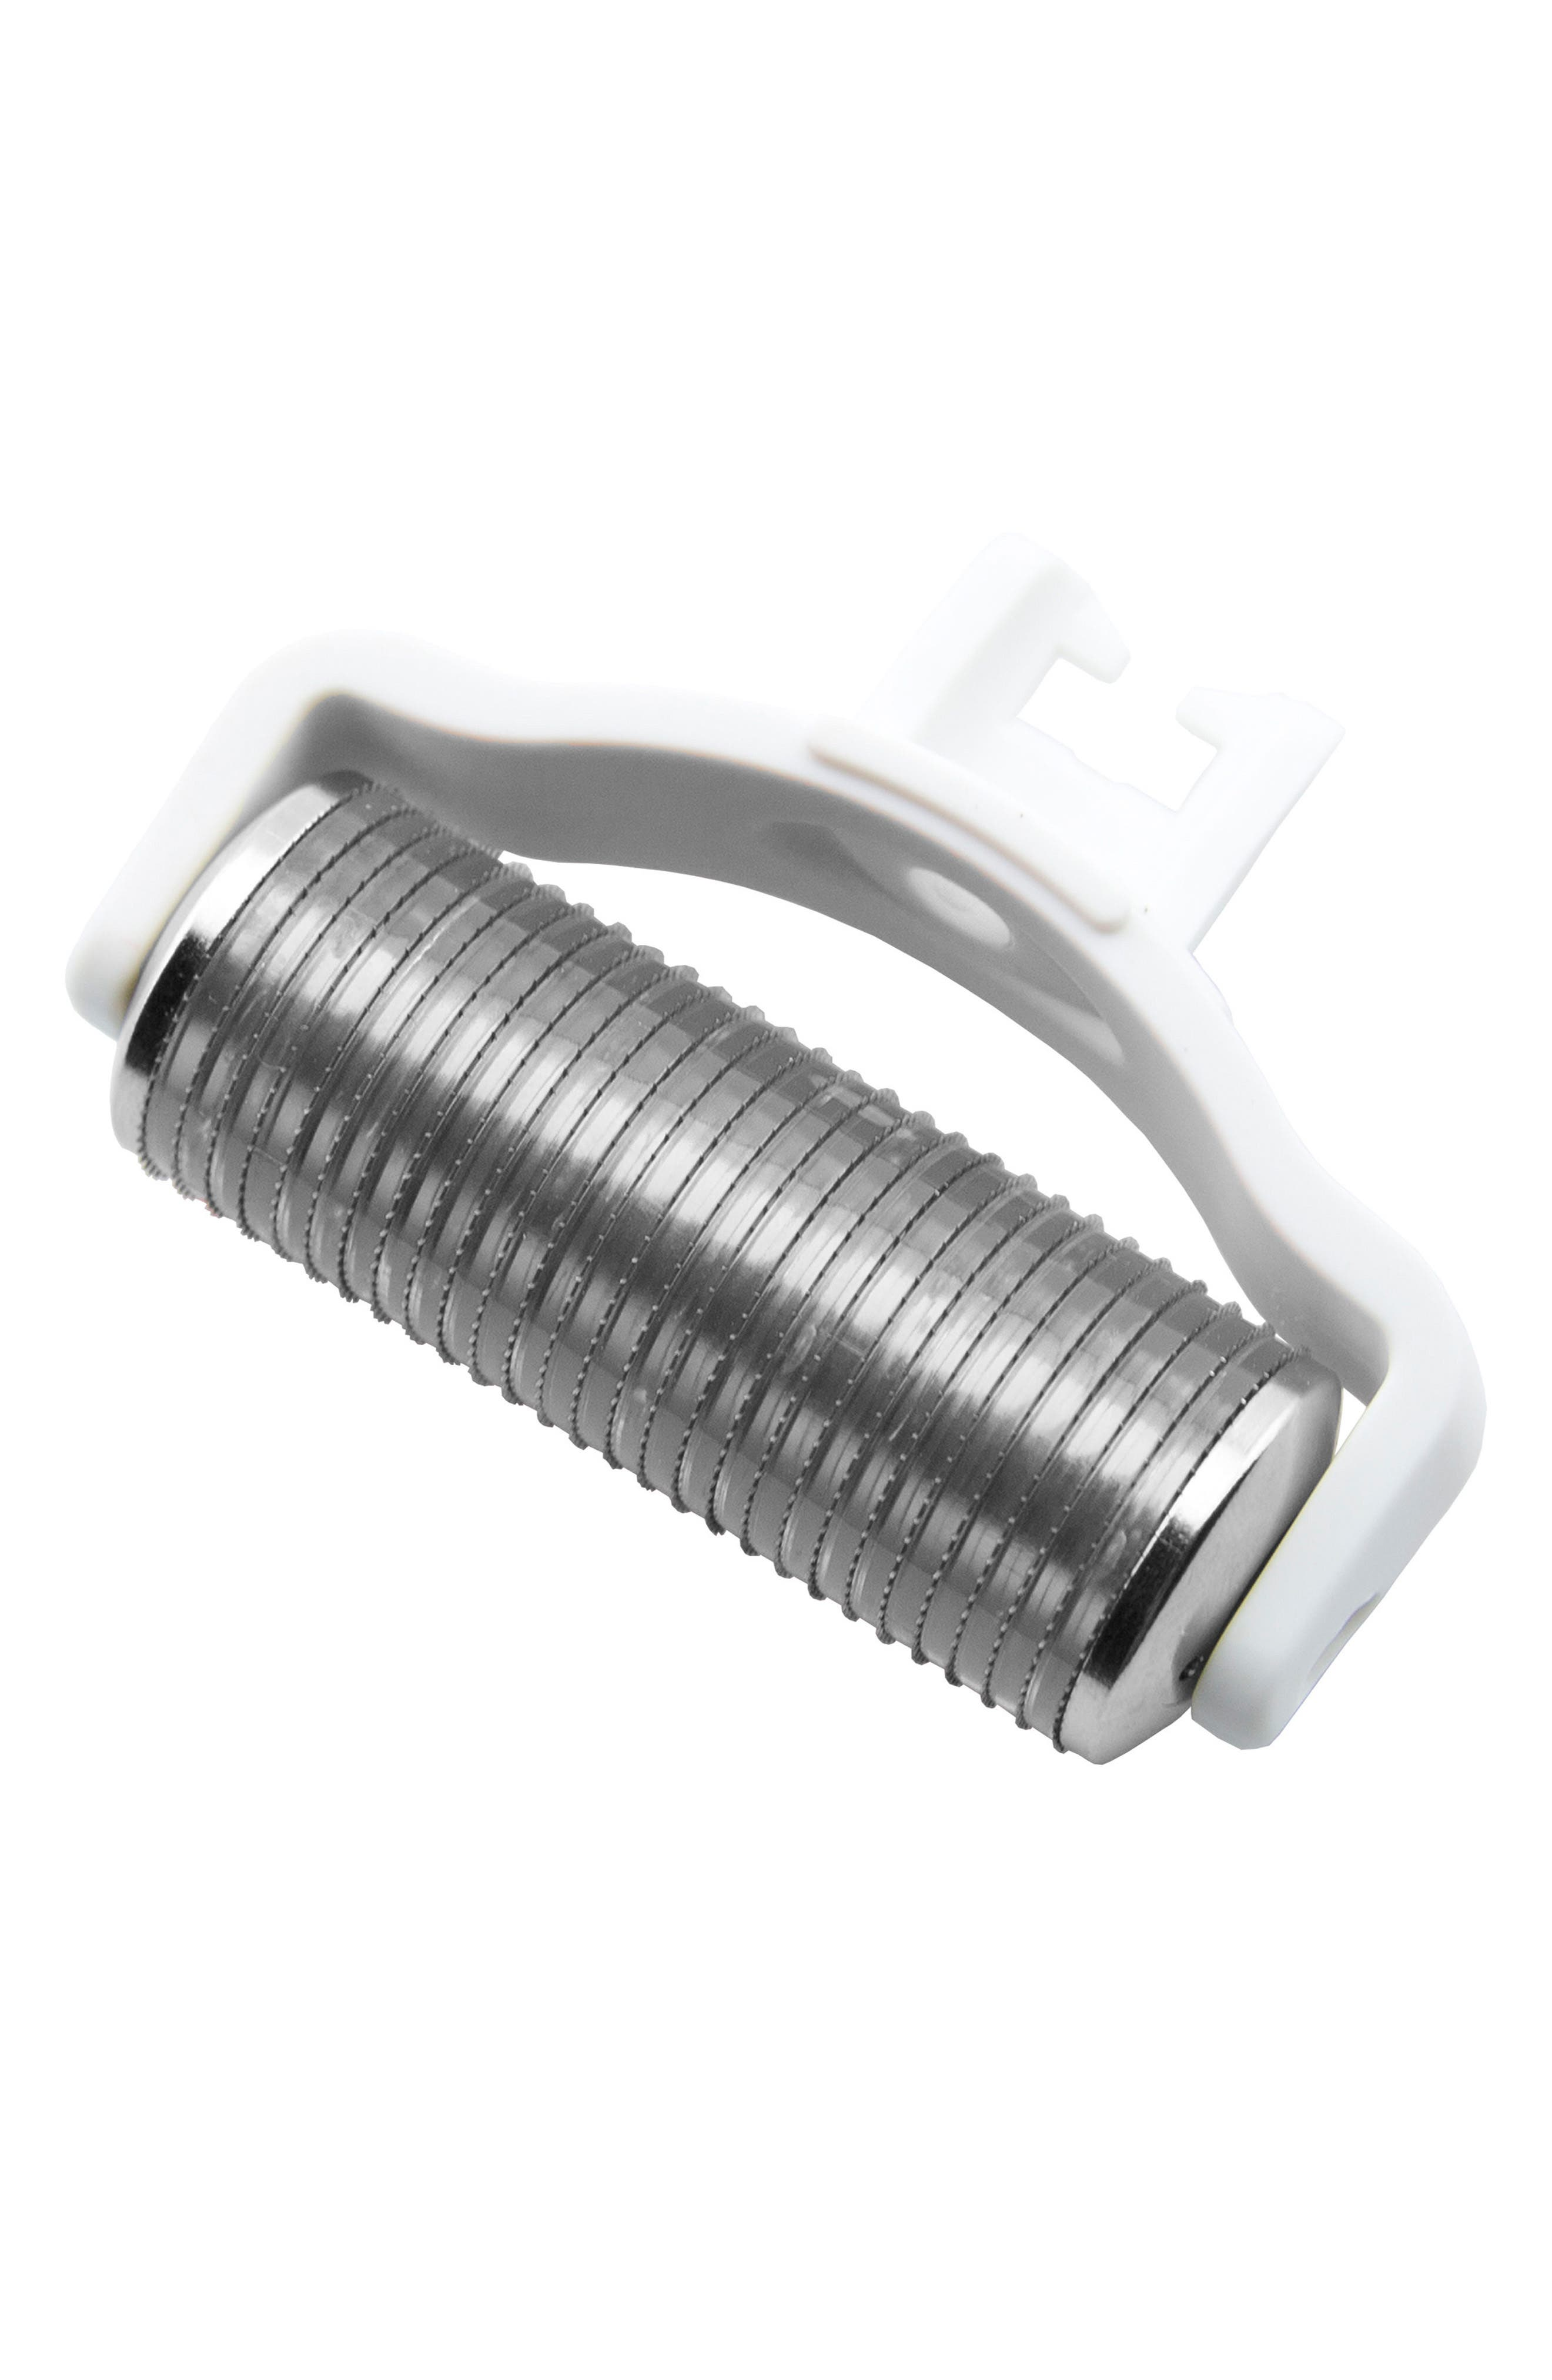 GloPRO<sup>®</sup> BODY MicroTip<sup>™</sup> Attachment Replacement Head,                             Alternate thumbnail 8, color,                             WHITE